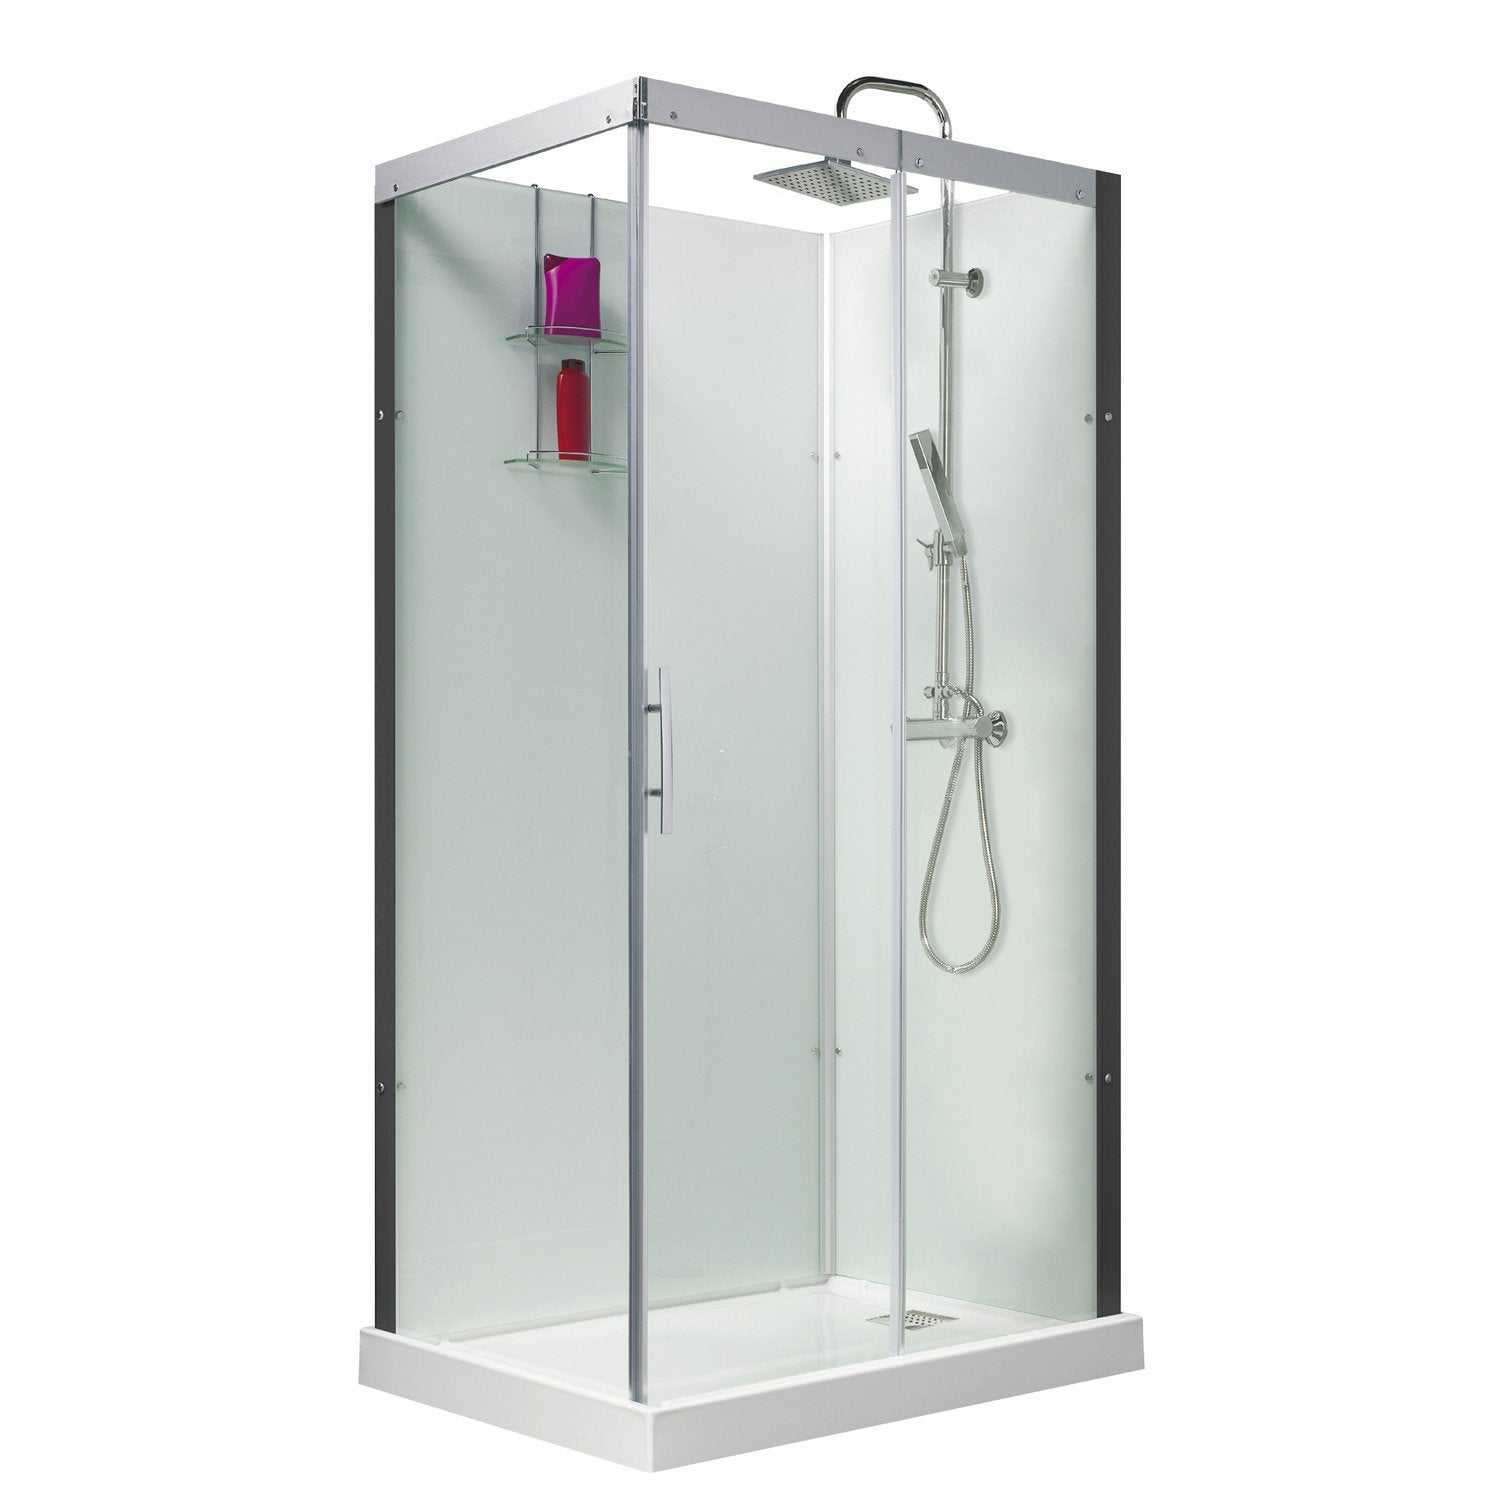 Cabine de douche rectangulaire 110x80 cm thalaglass 2 thermo leroy merlin - Cabine douche rectangulaire ...